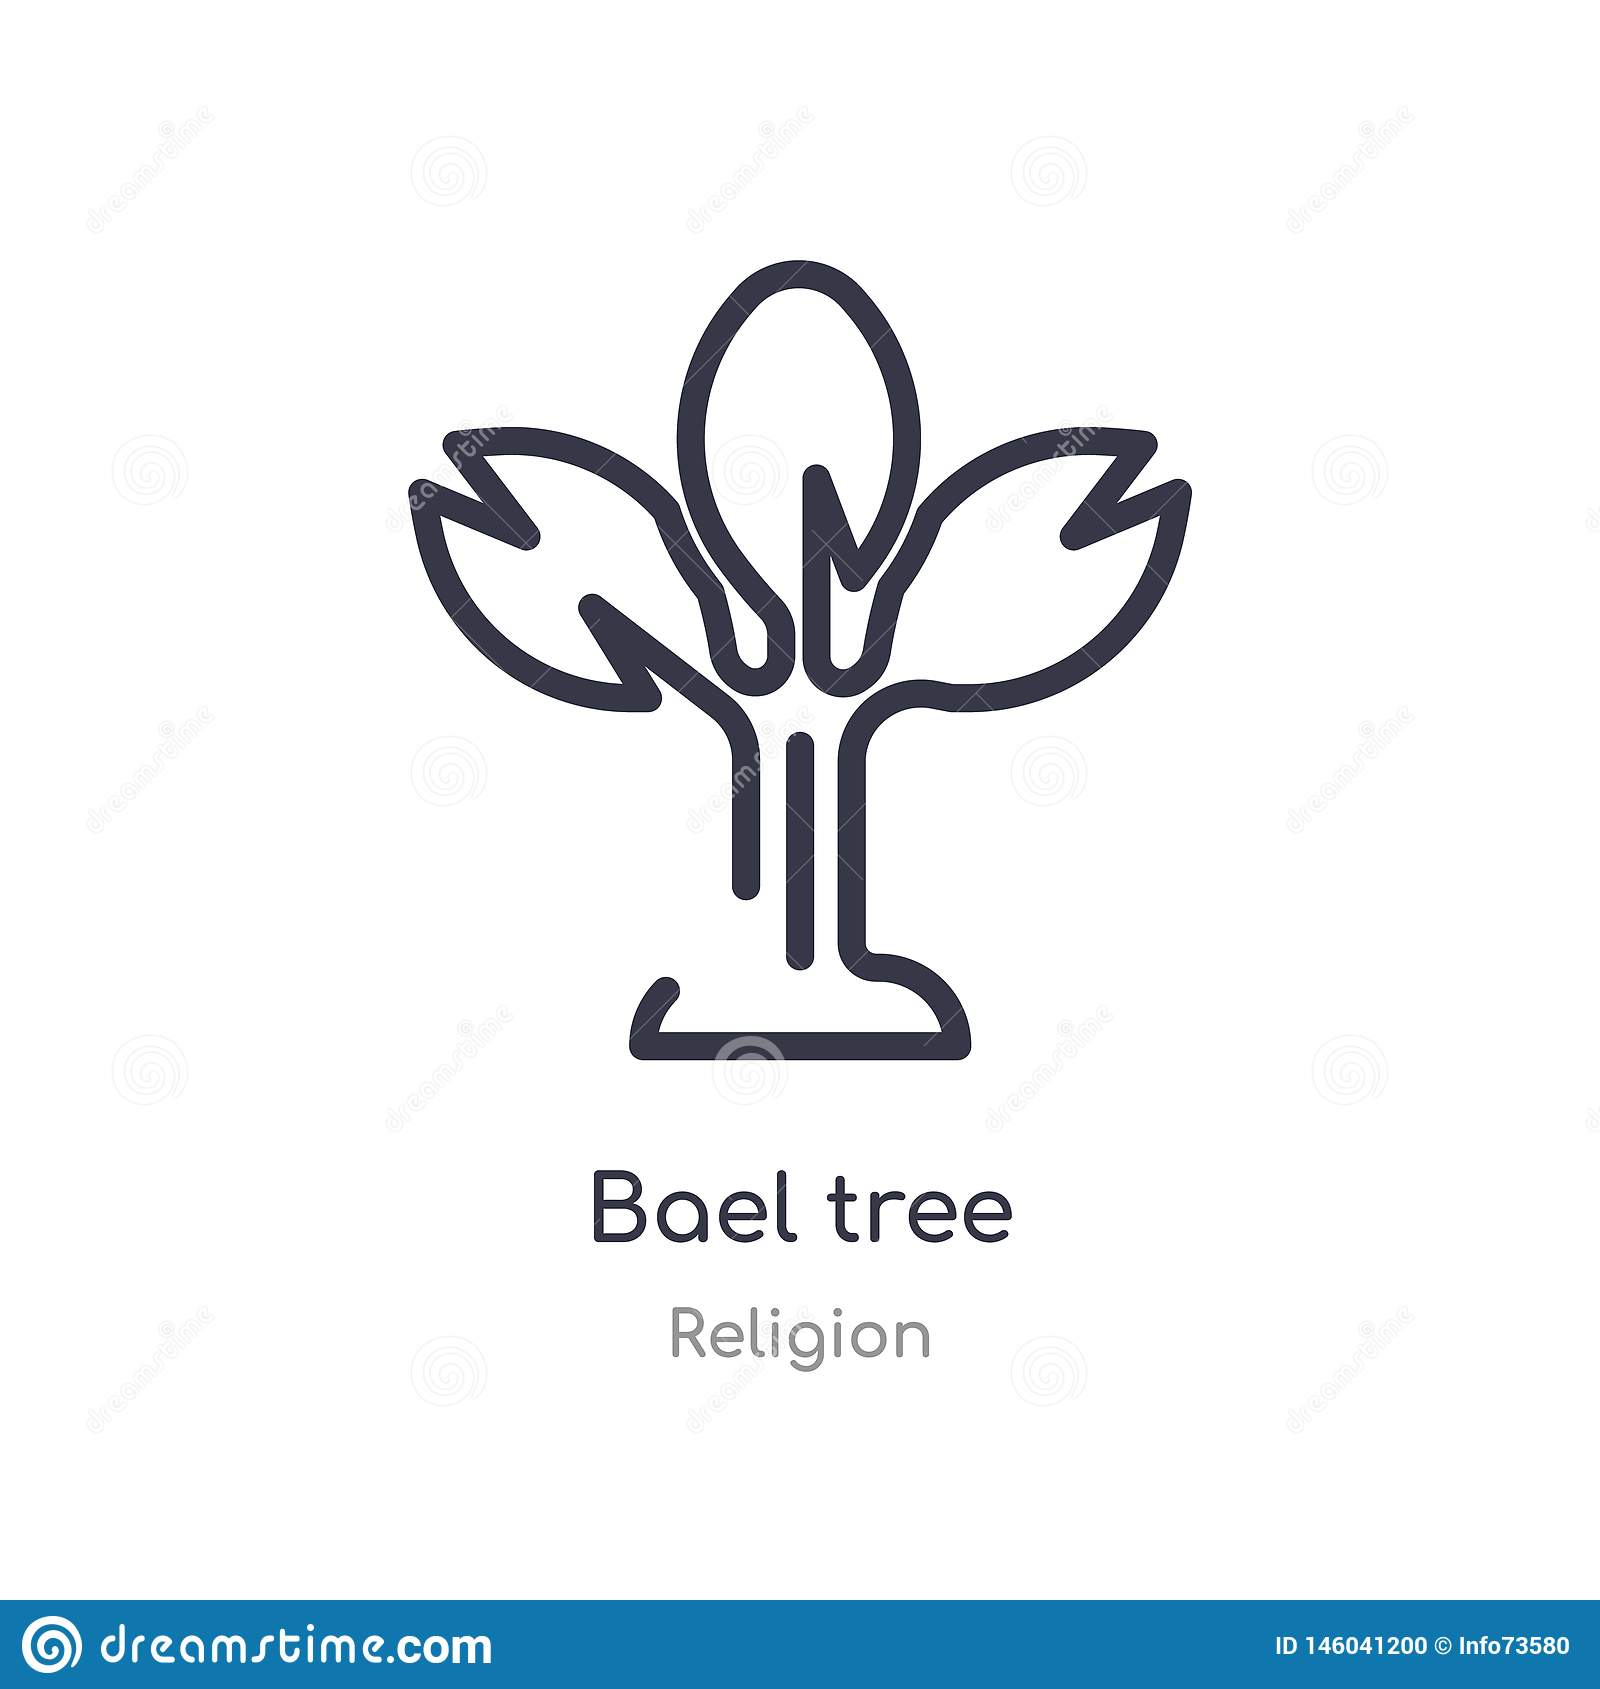 bael tree outline icon. isolated line vector illustration from religion collection. editable thin stroke bael tree icon on white